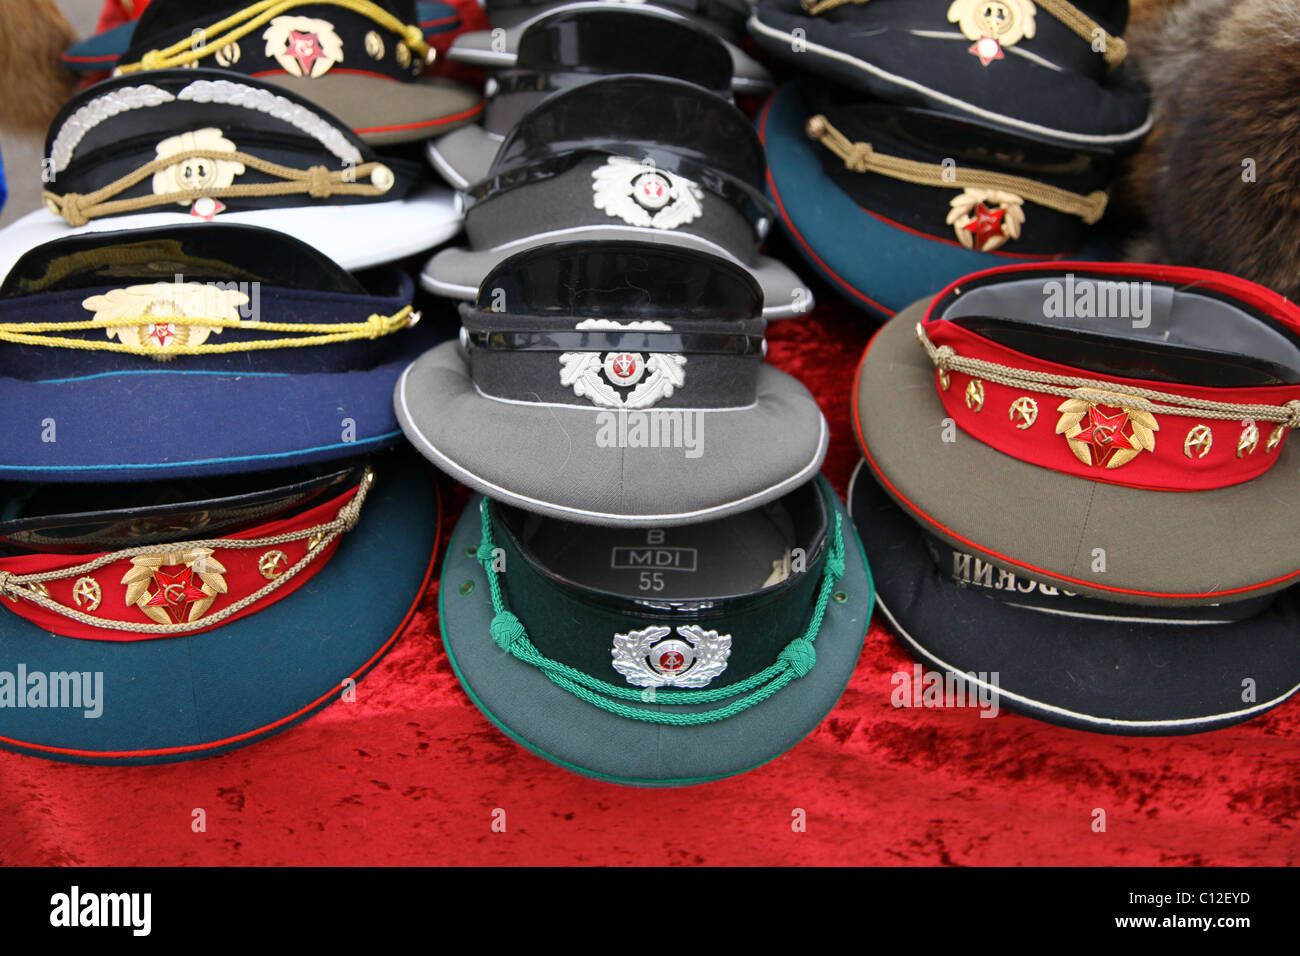 93106cba8d824 Army Hat Stock Photos & Army Hat Stock Images - Alamy